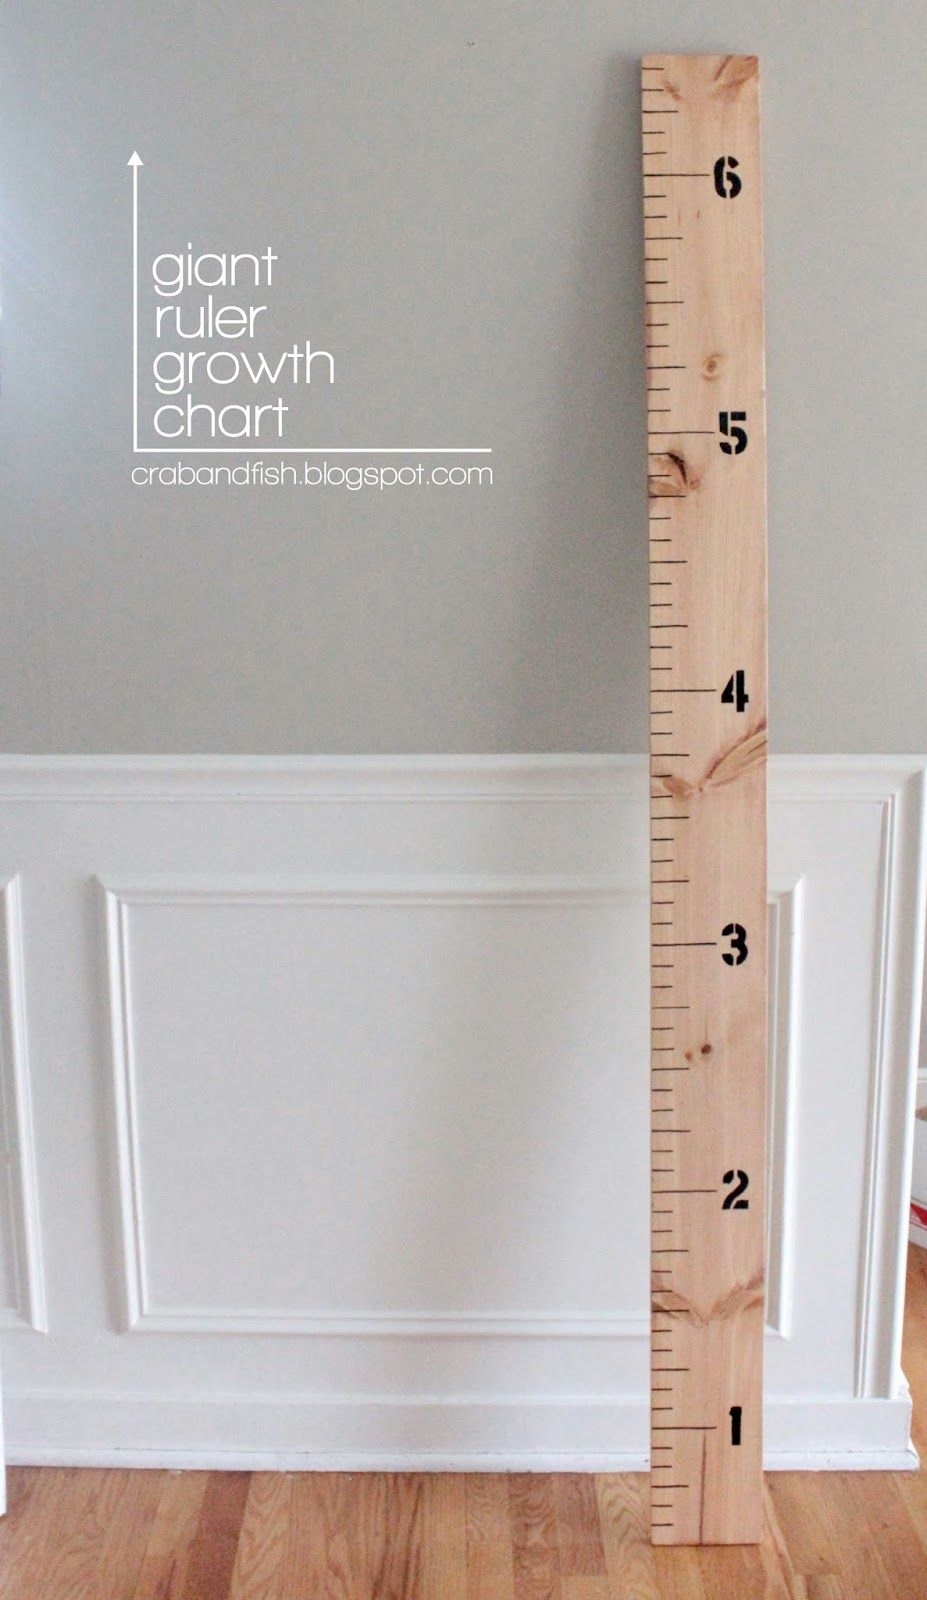 So easy got heights that i didnt have from pediatrician giant giant ruler growth chart diy project to track your kids growth so you can take it with you if you end up moving geenschuldenfo Images